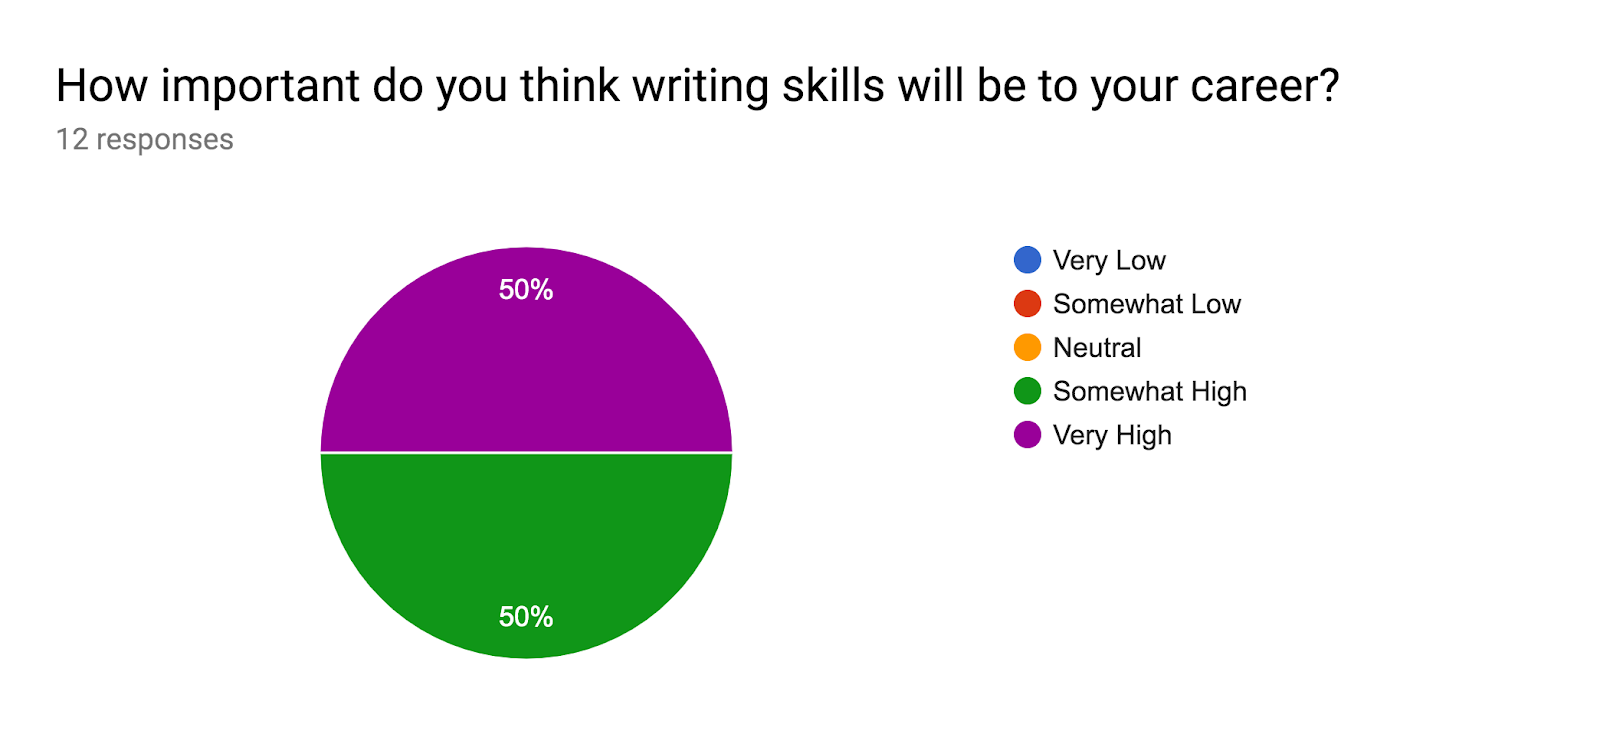 Forms response chart. Question title: How important do you think writing skills will be to your career?. Number of responses: 12 responses.